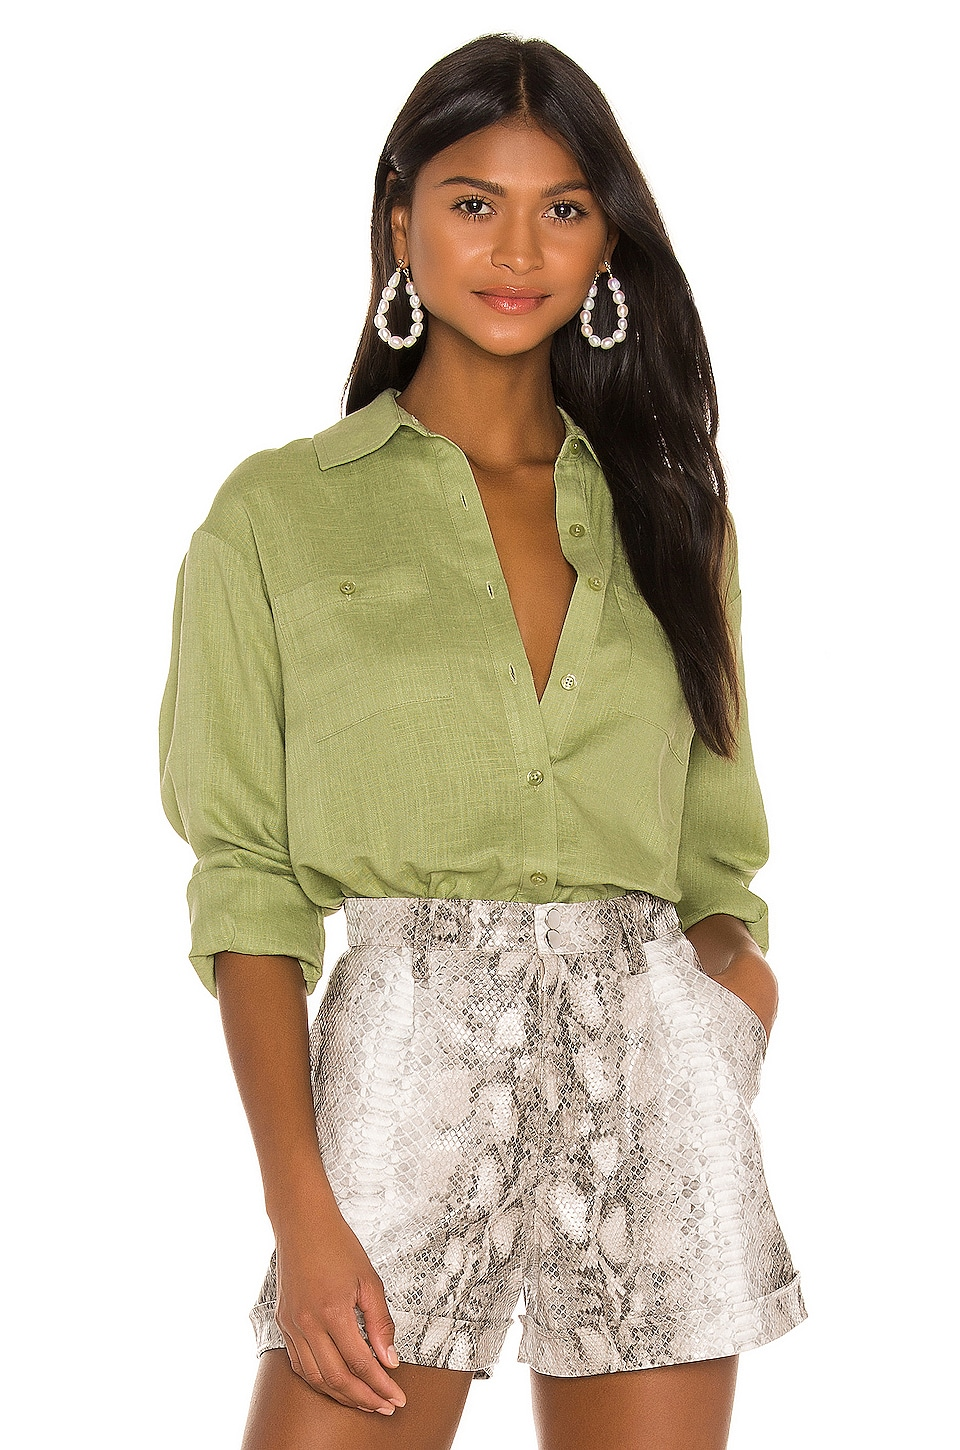 Song of Style Cyril Top en Pear Green